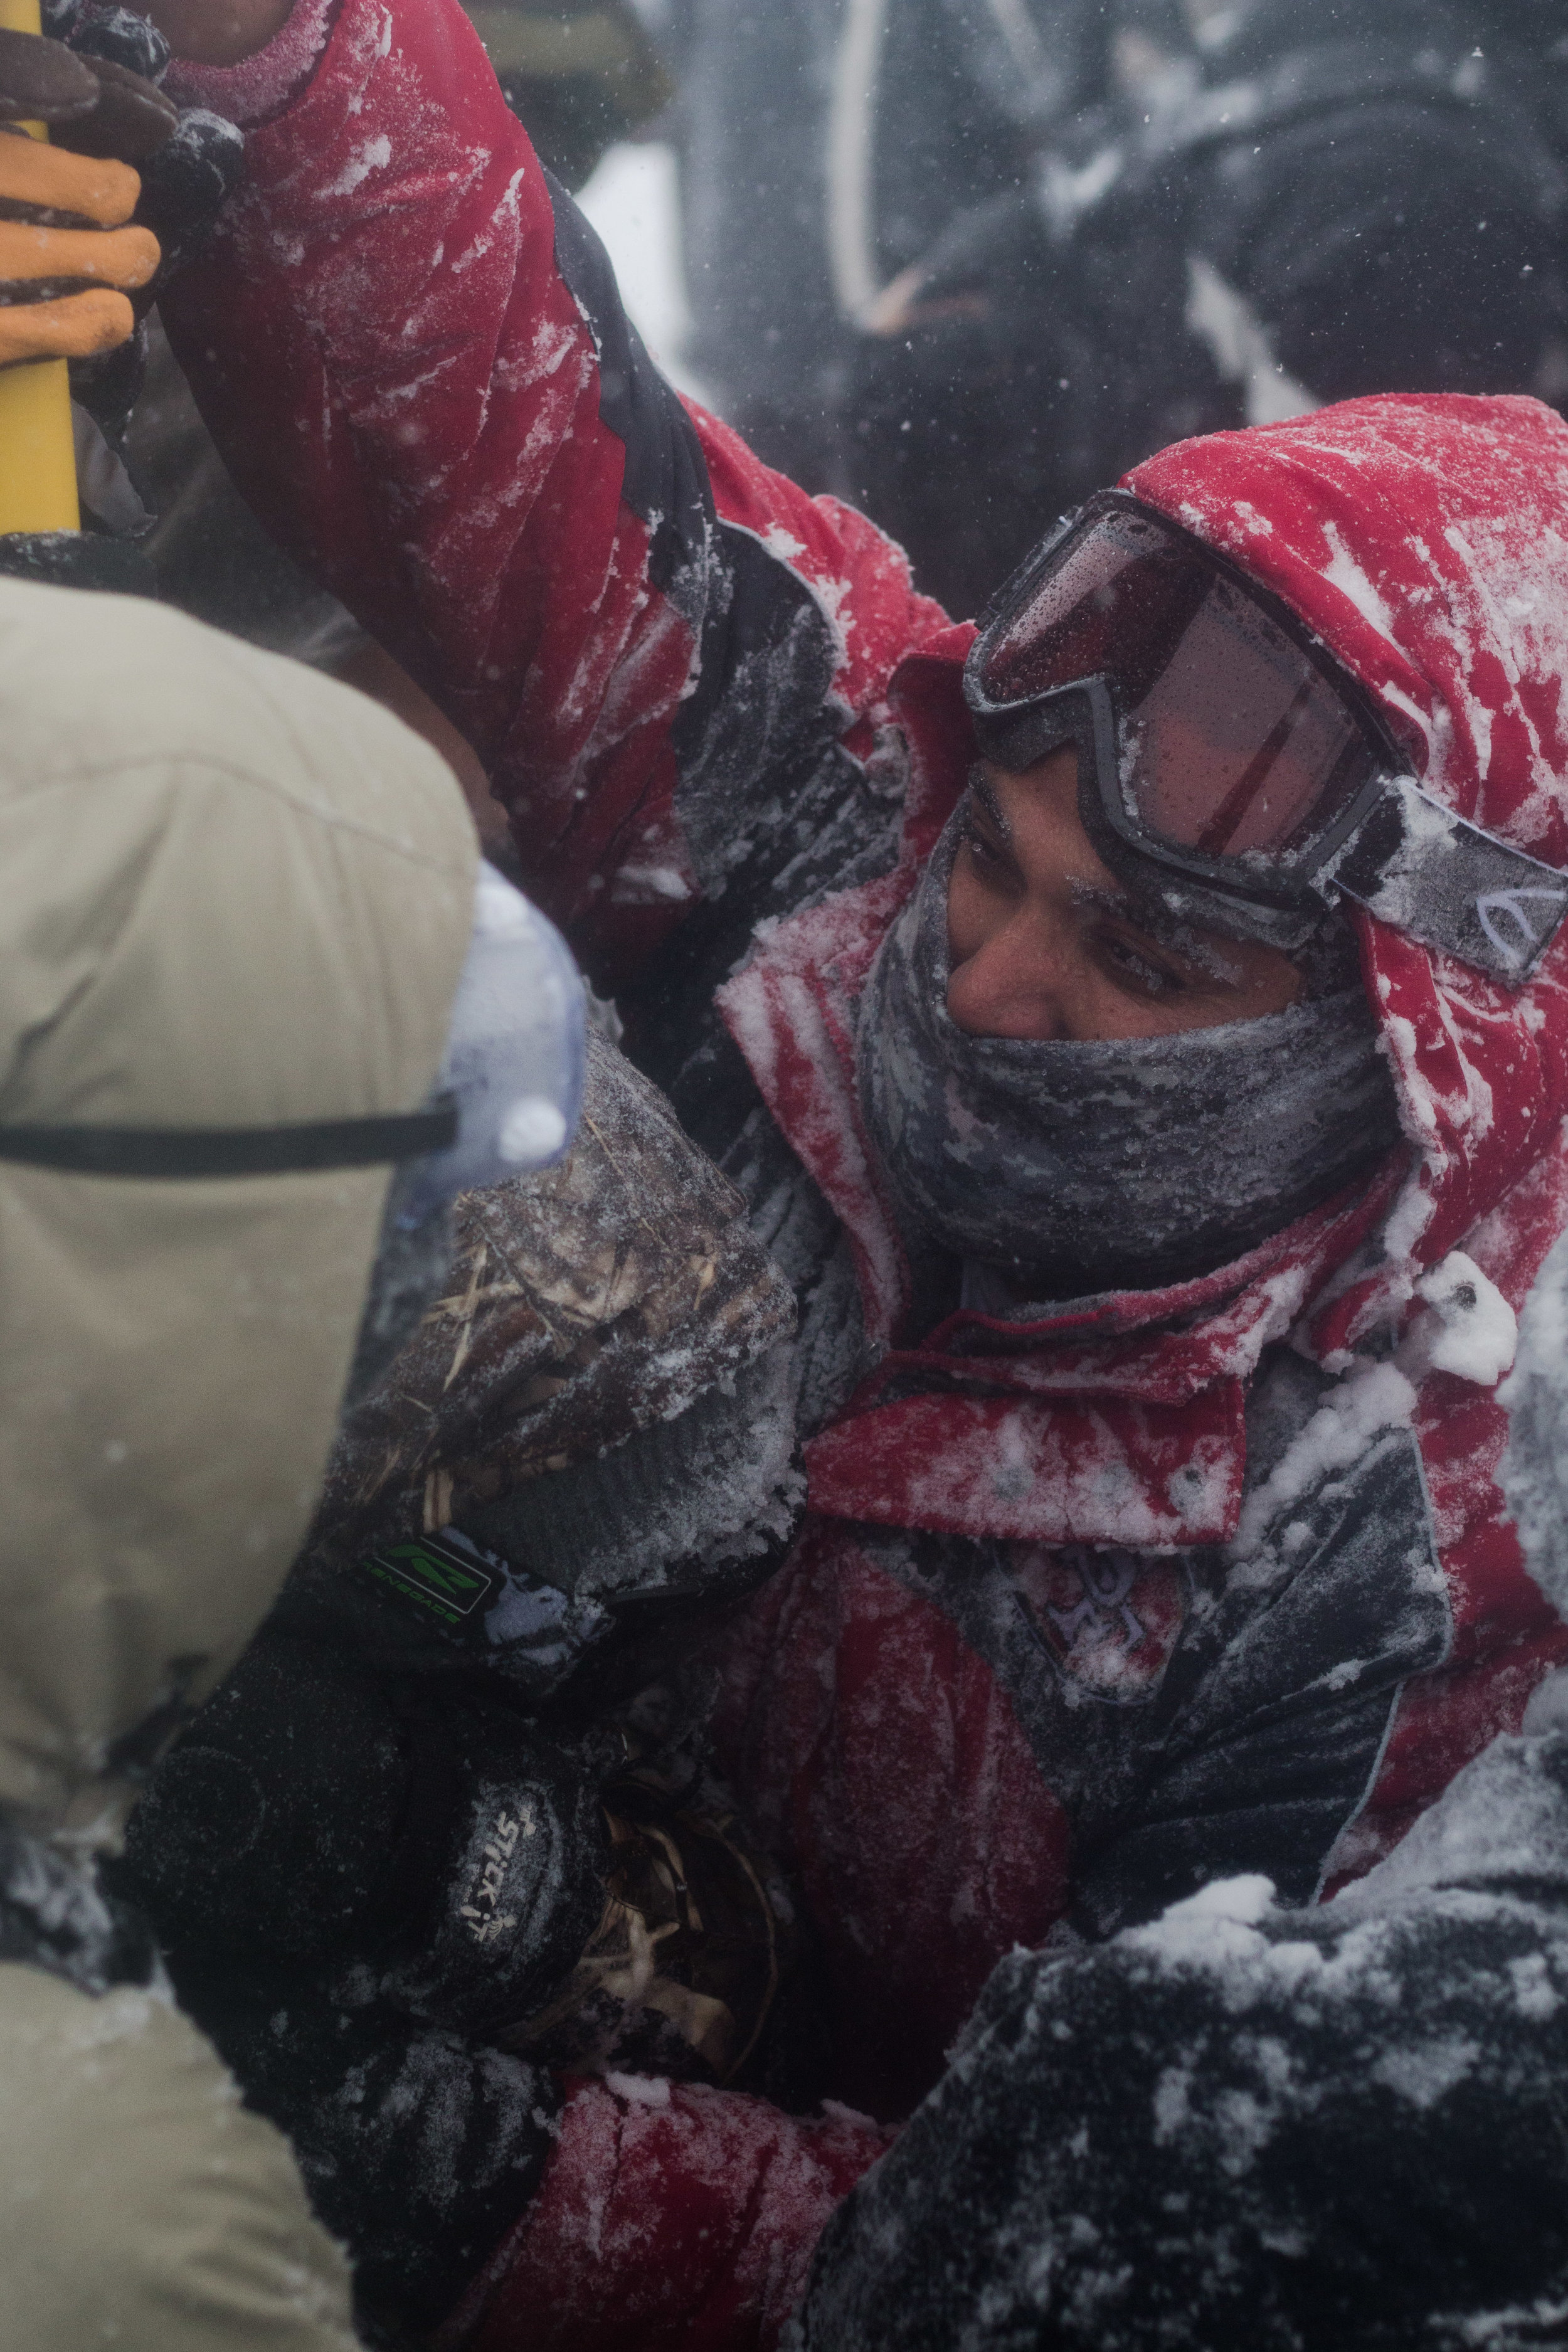 veterans fight against the blizzard conditions to hold p an American flag